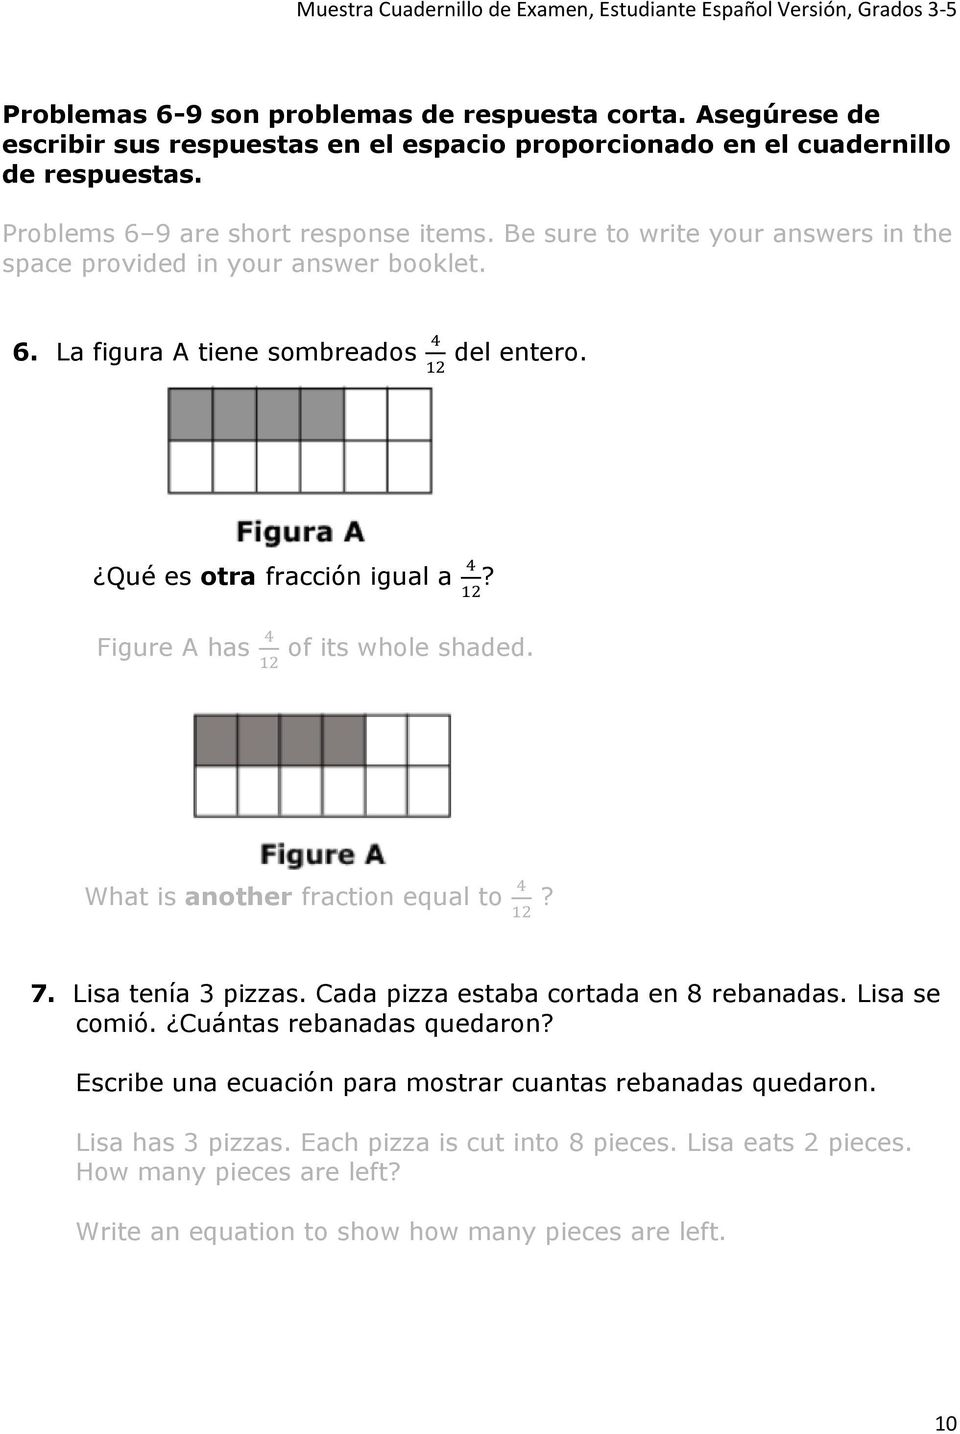 Figure A has 4 12 of its whole shaded. What is another fraction equal to 4 12? 7. Lisa tenía 3 pizzas. Cada pizza estaba cortada en 8 rebanadas. Lisa se comió. Cuántas rebanadas quedaron?